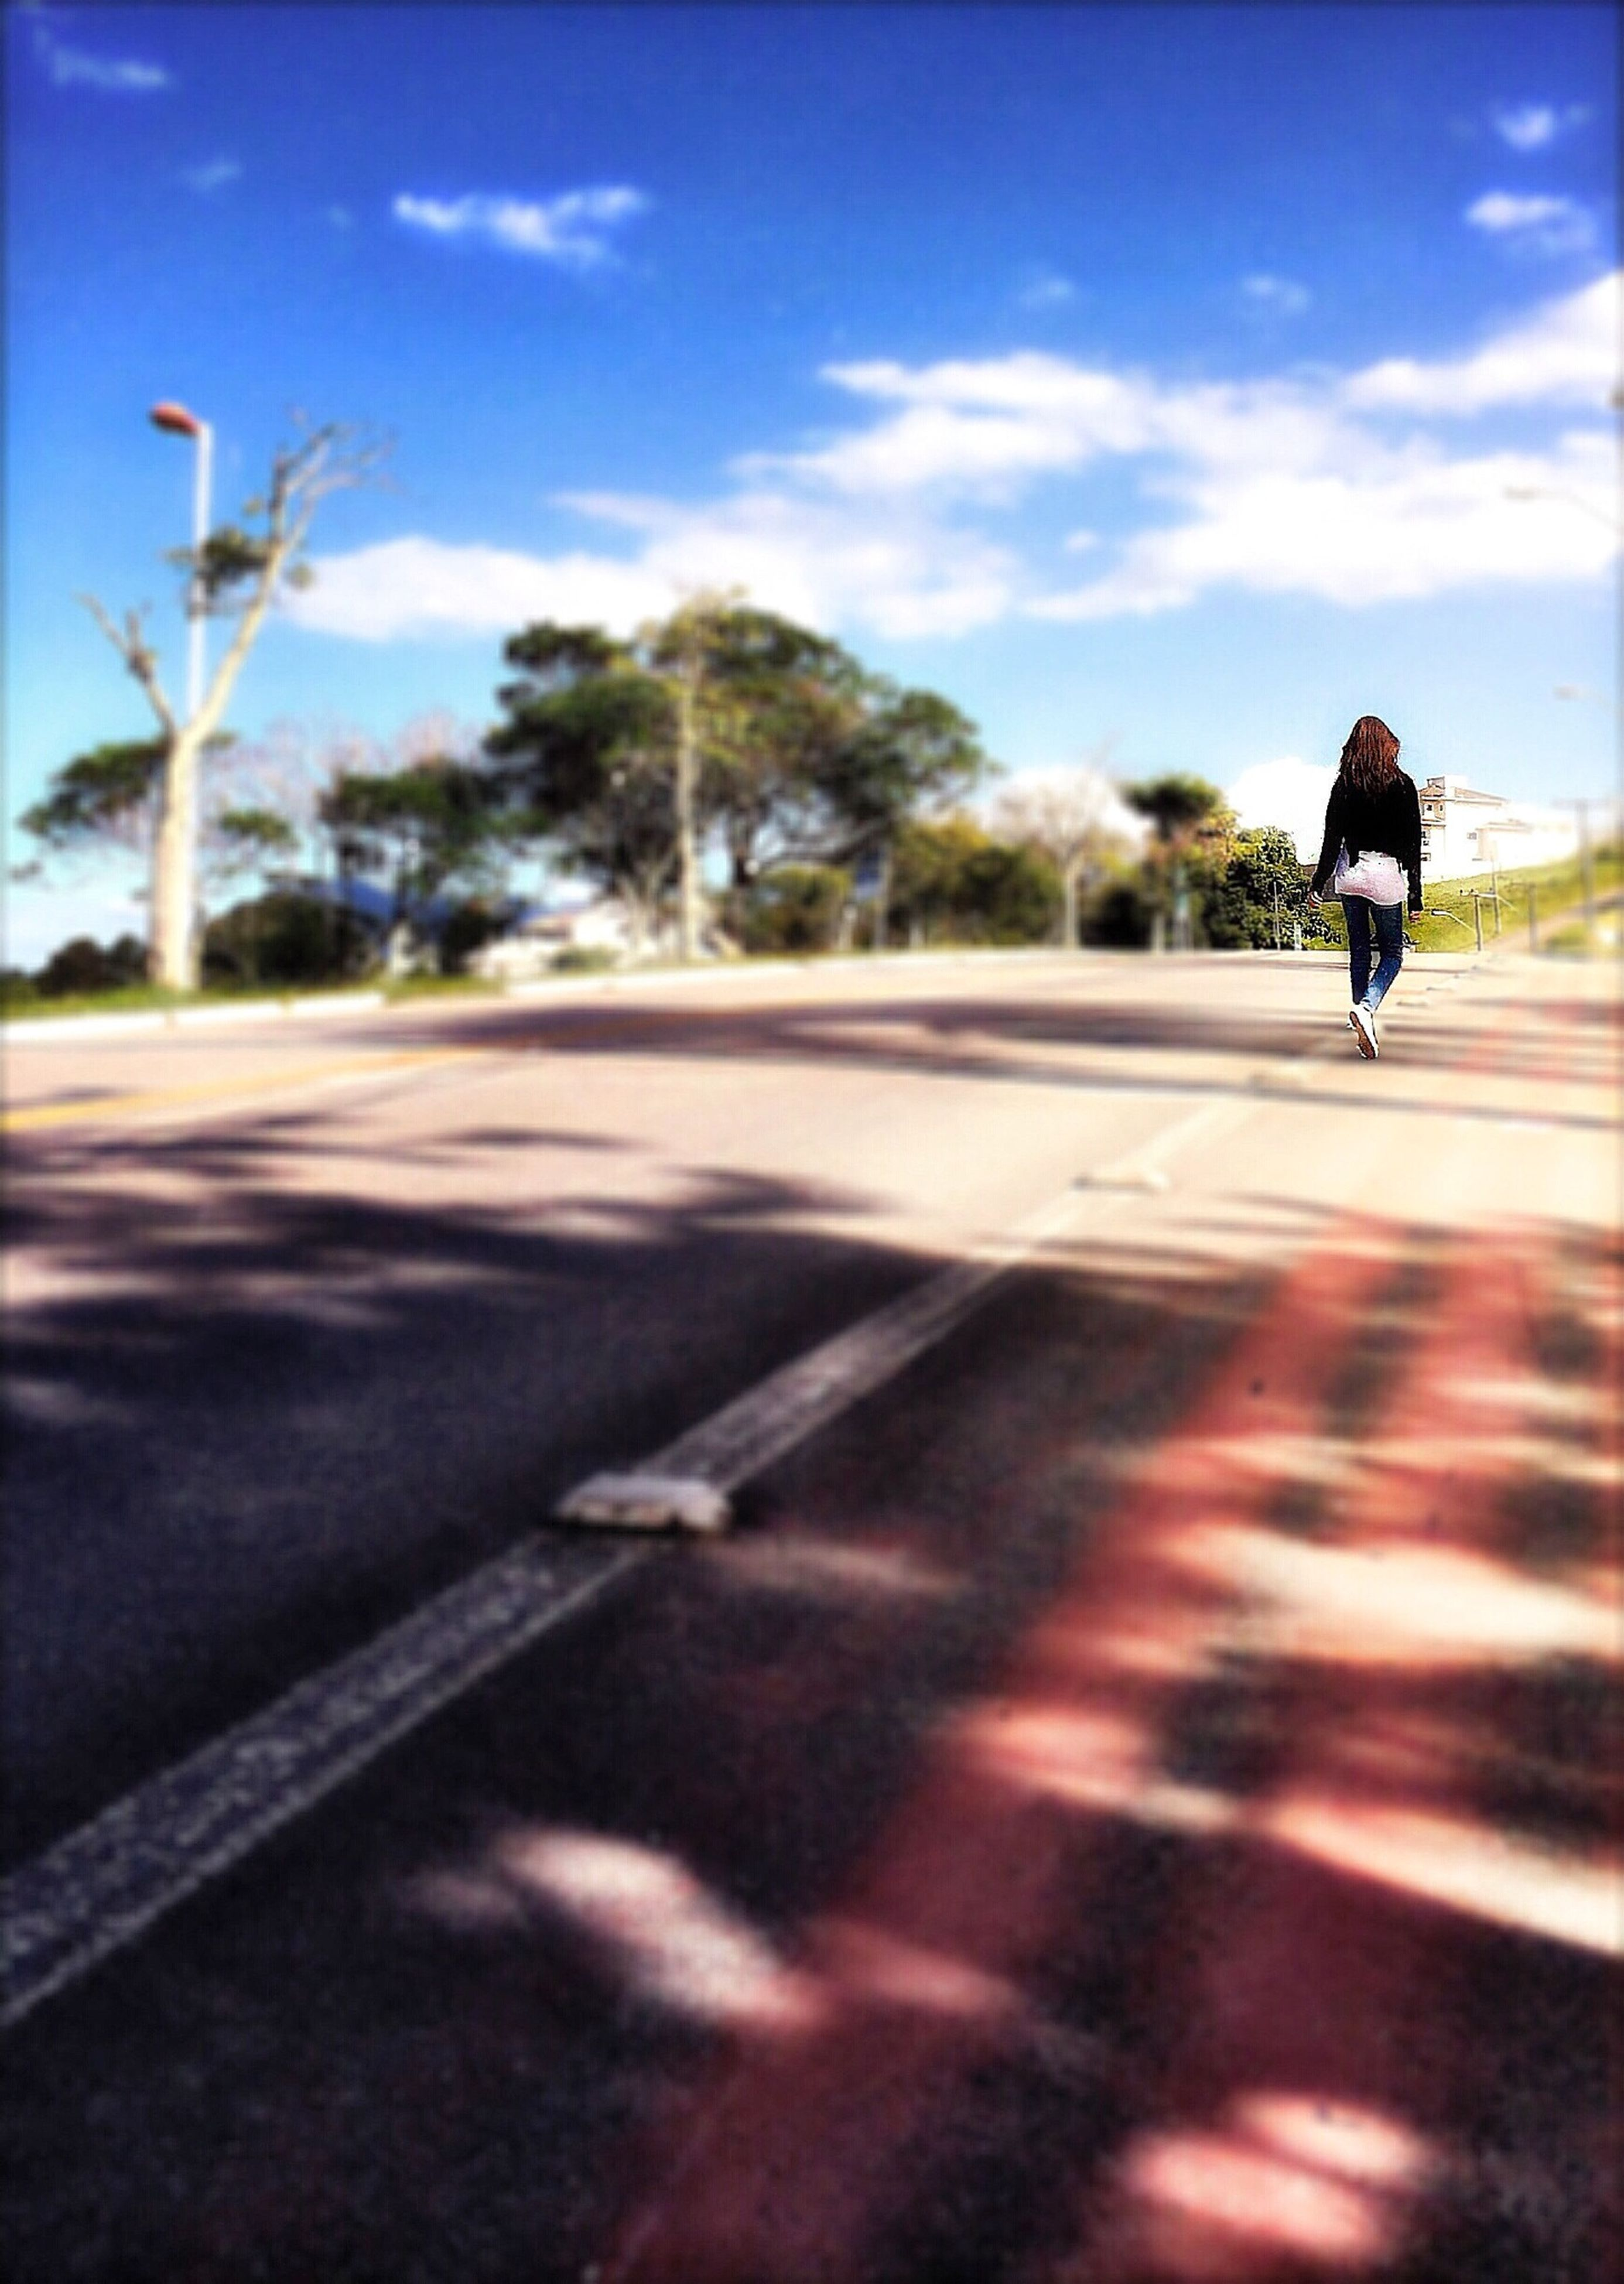 transportation, road, land vehicle, mode of transport, sky, car, street, road marking, the way forward, on the move, riding, bicycle, sunlight, cloud - sky, travel, cycling, asphalt, cloud